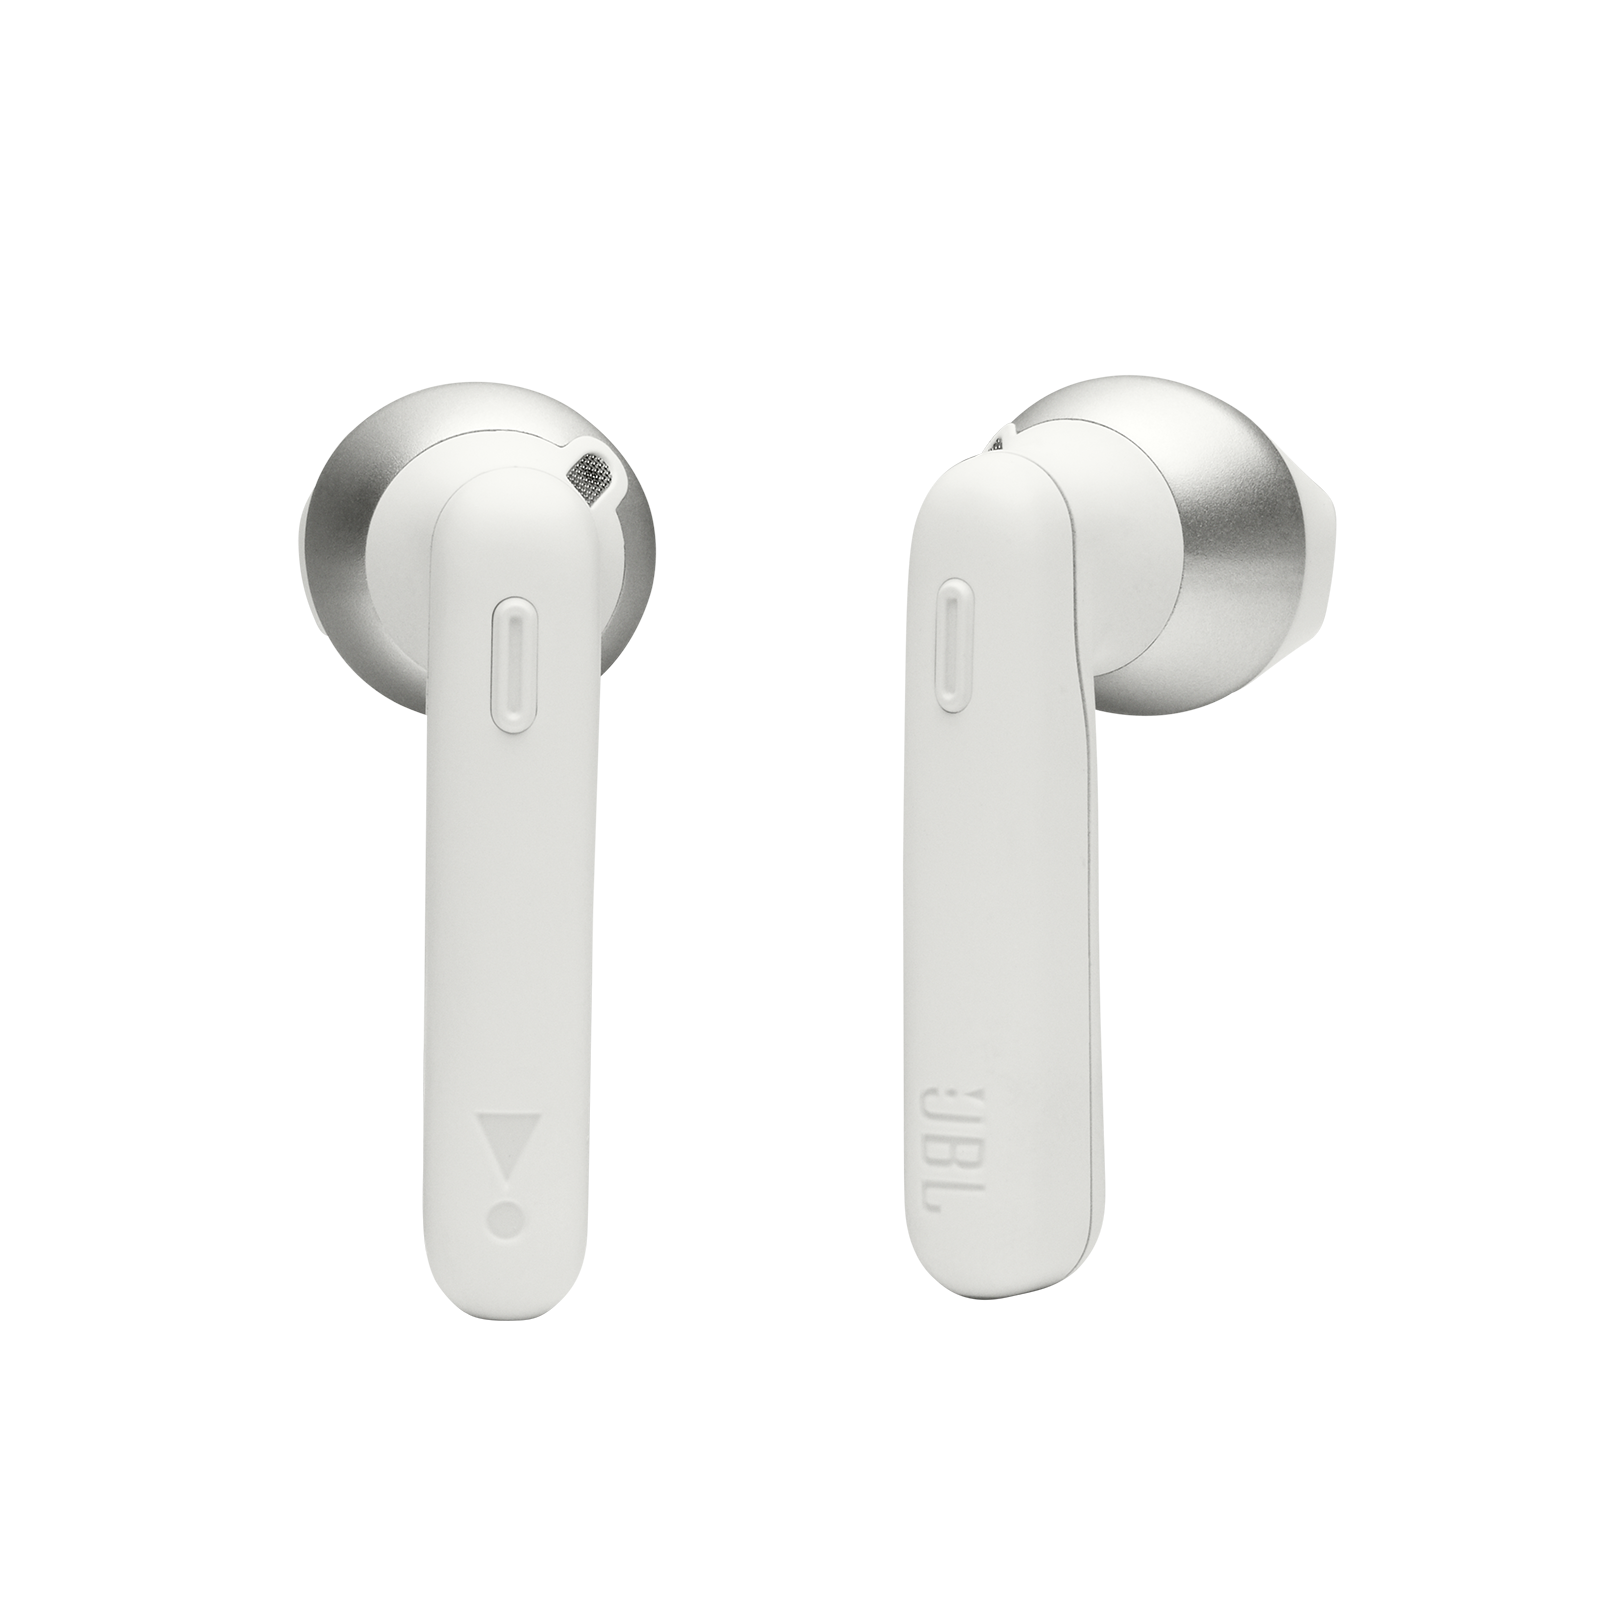 JBL TUNE 220TWS - White - True wireless earbuds - Detailshot 1